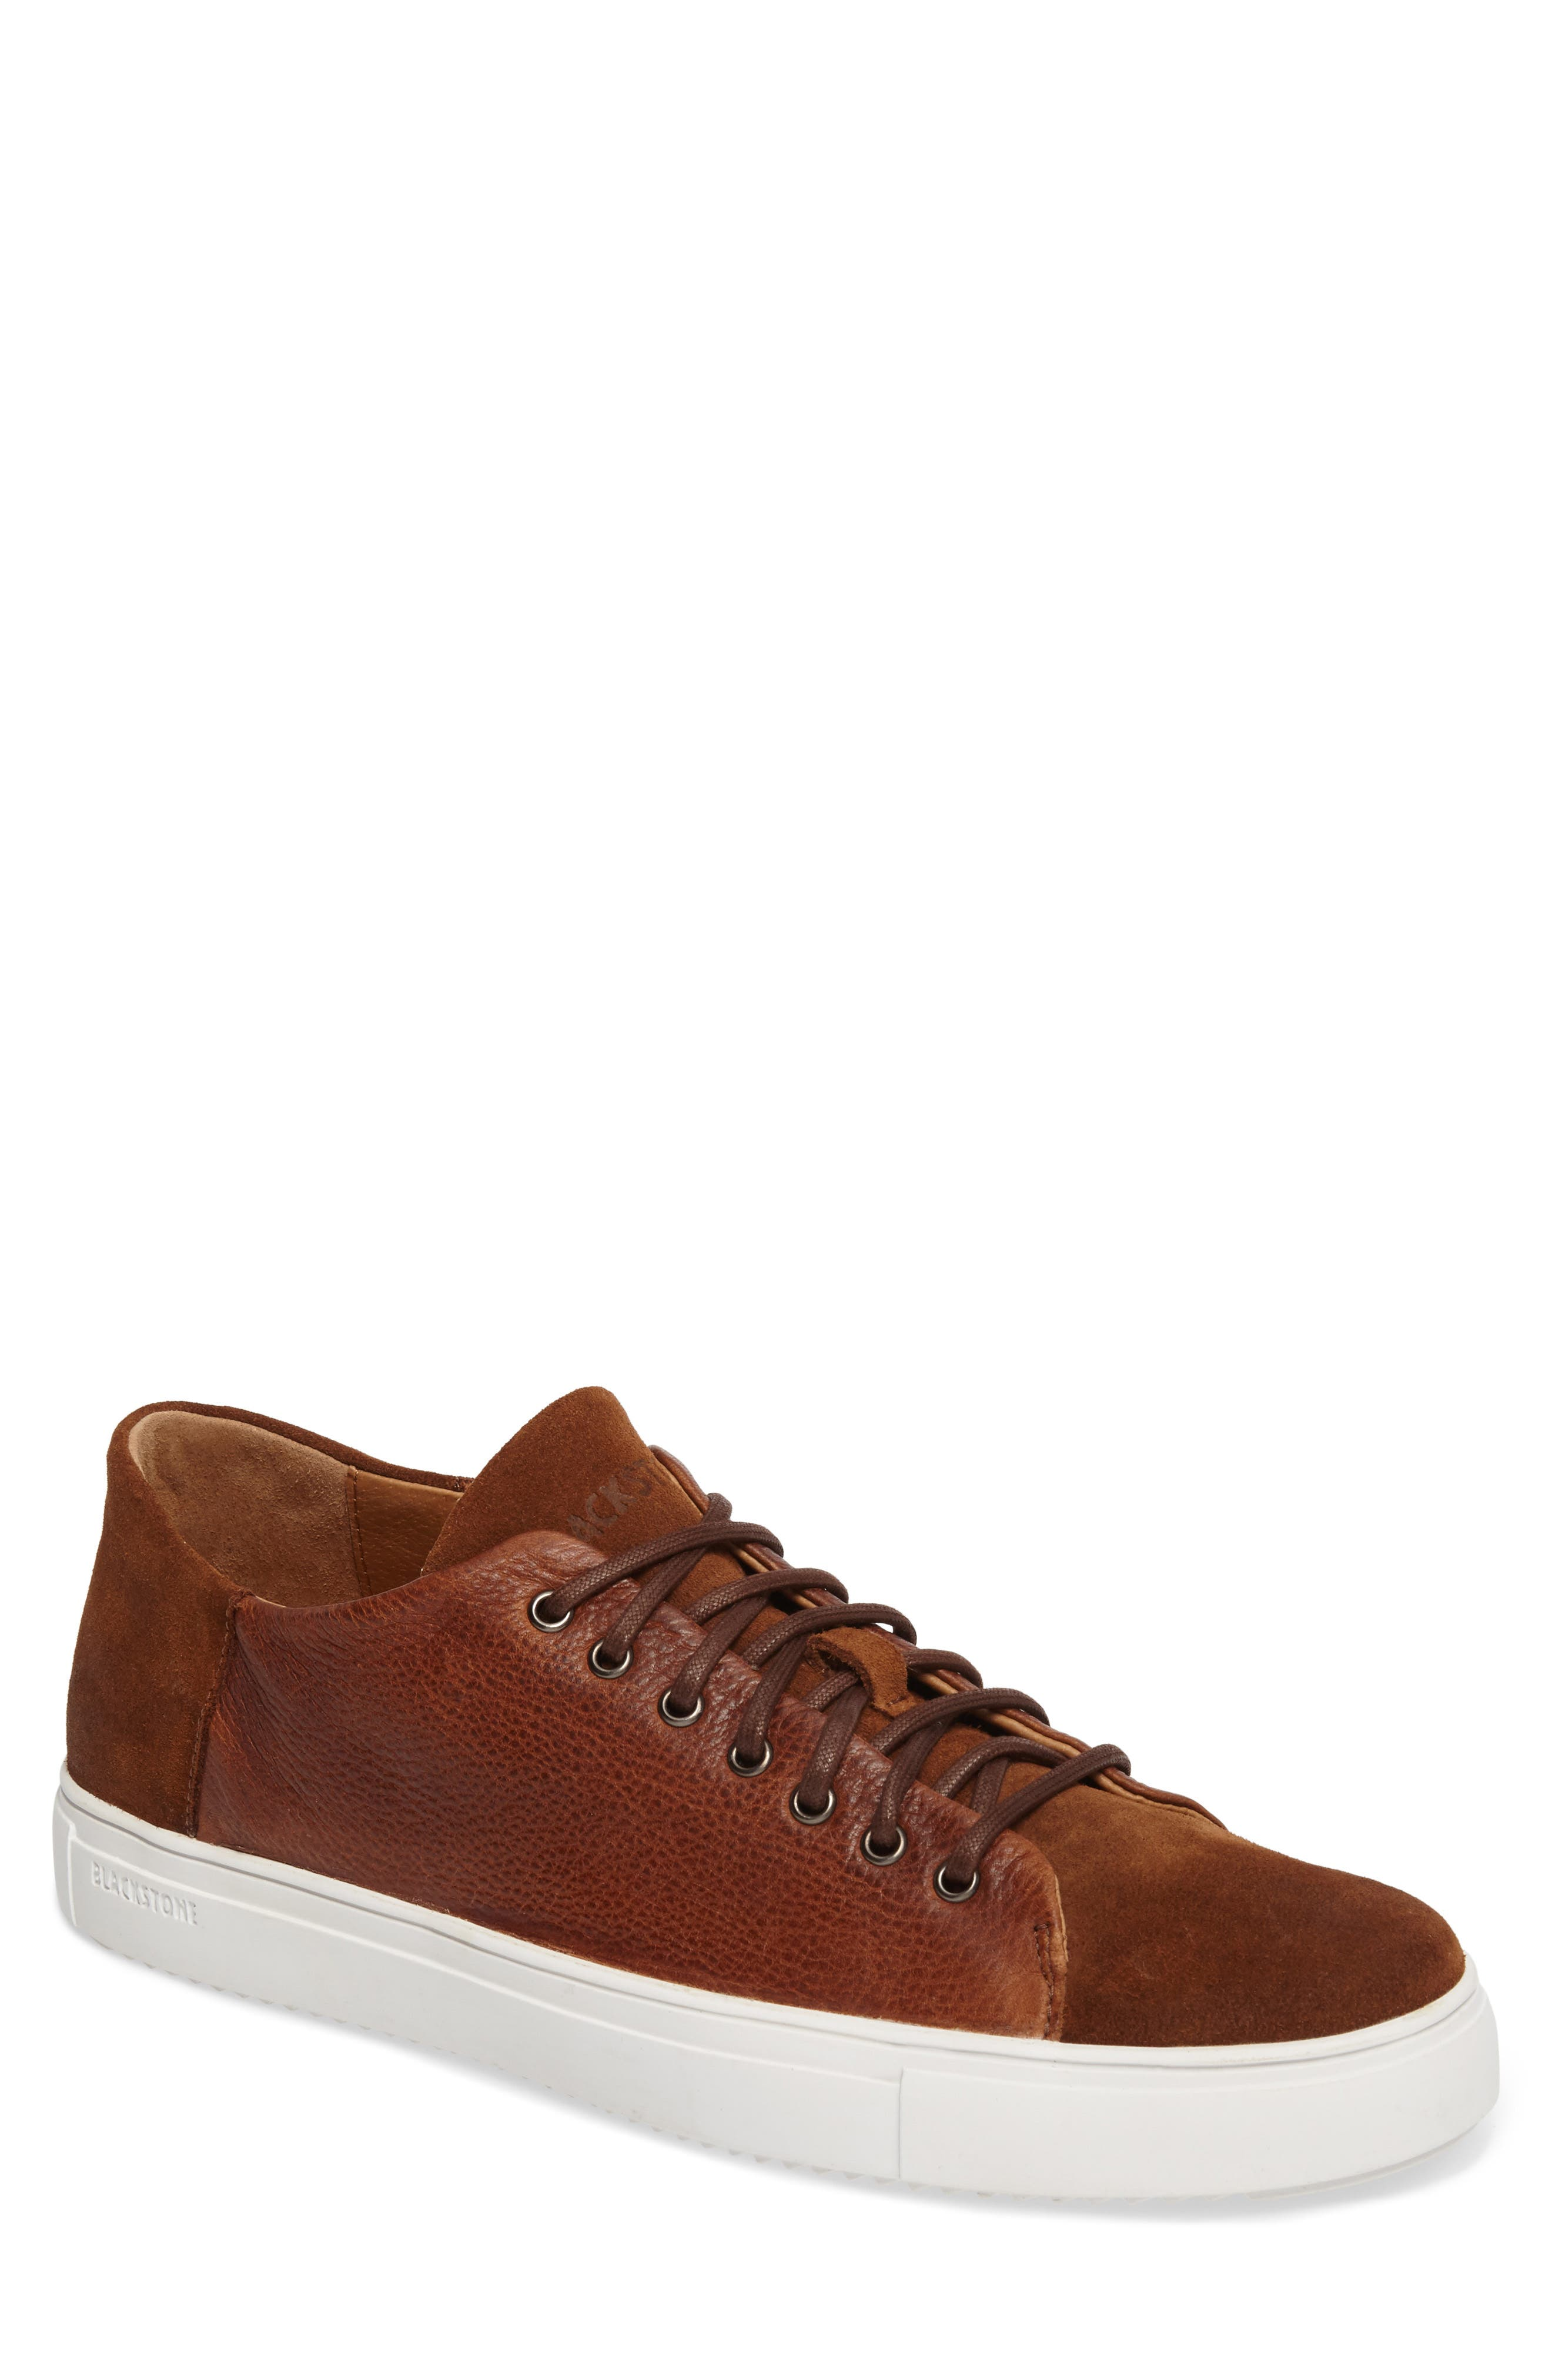 OM 58 Sneaker,                         Main,                         color, Old Yellow Leather